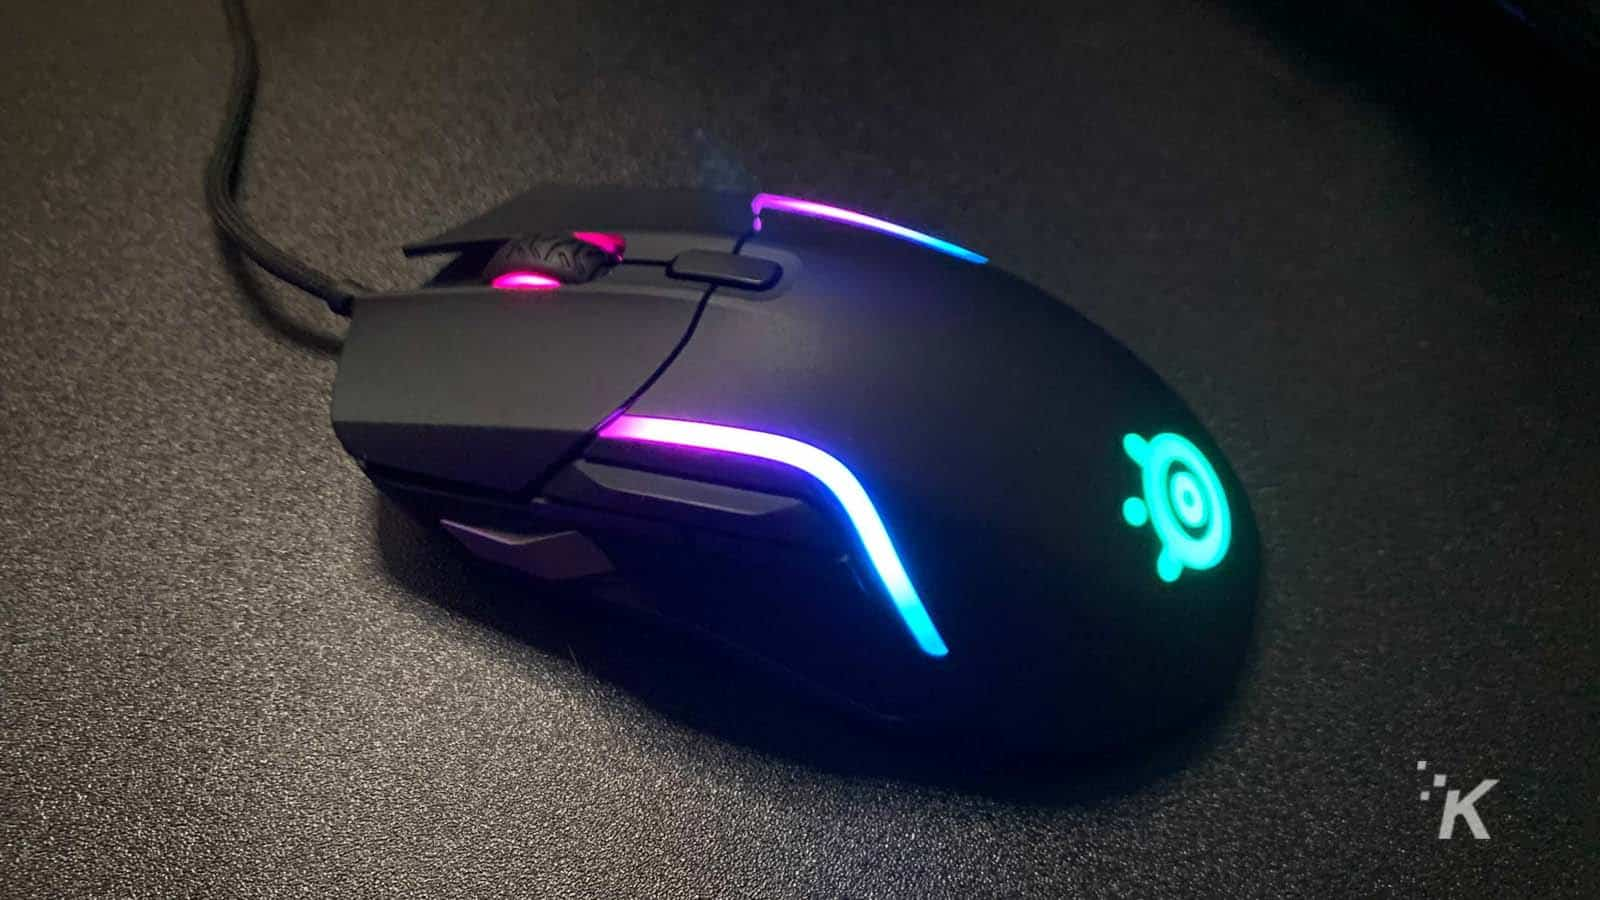 steelseries rival 5 gaming mouse